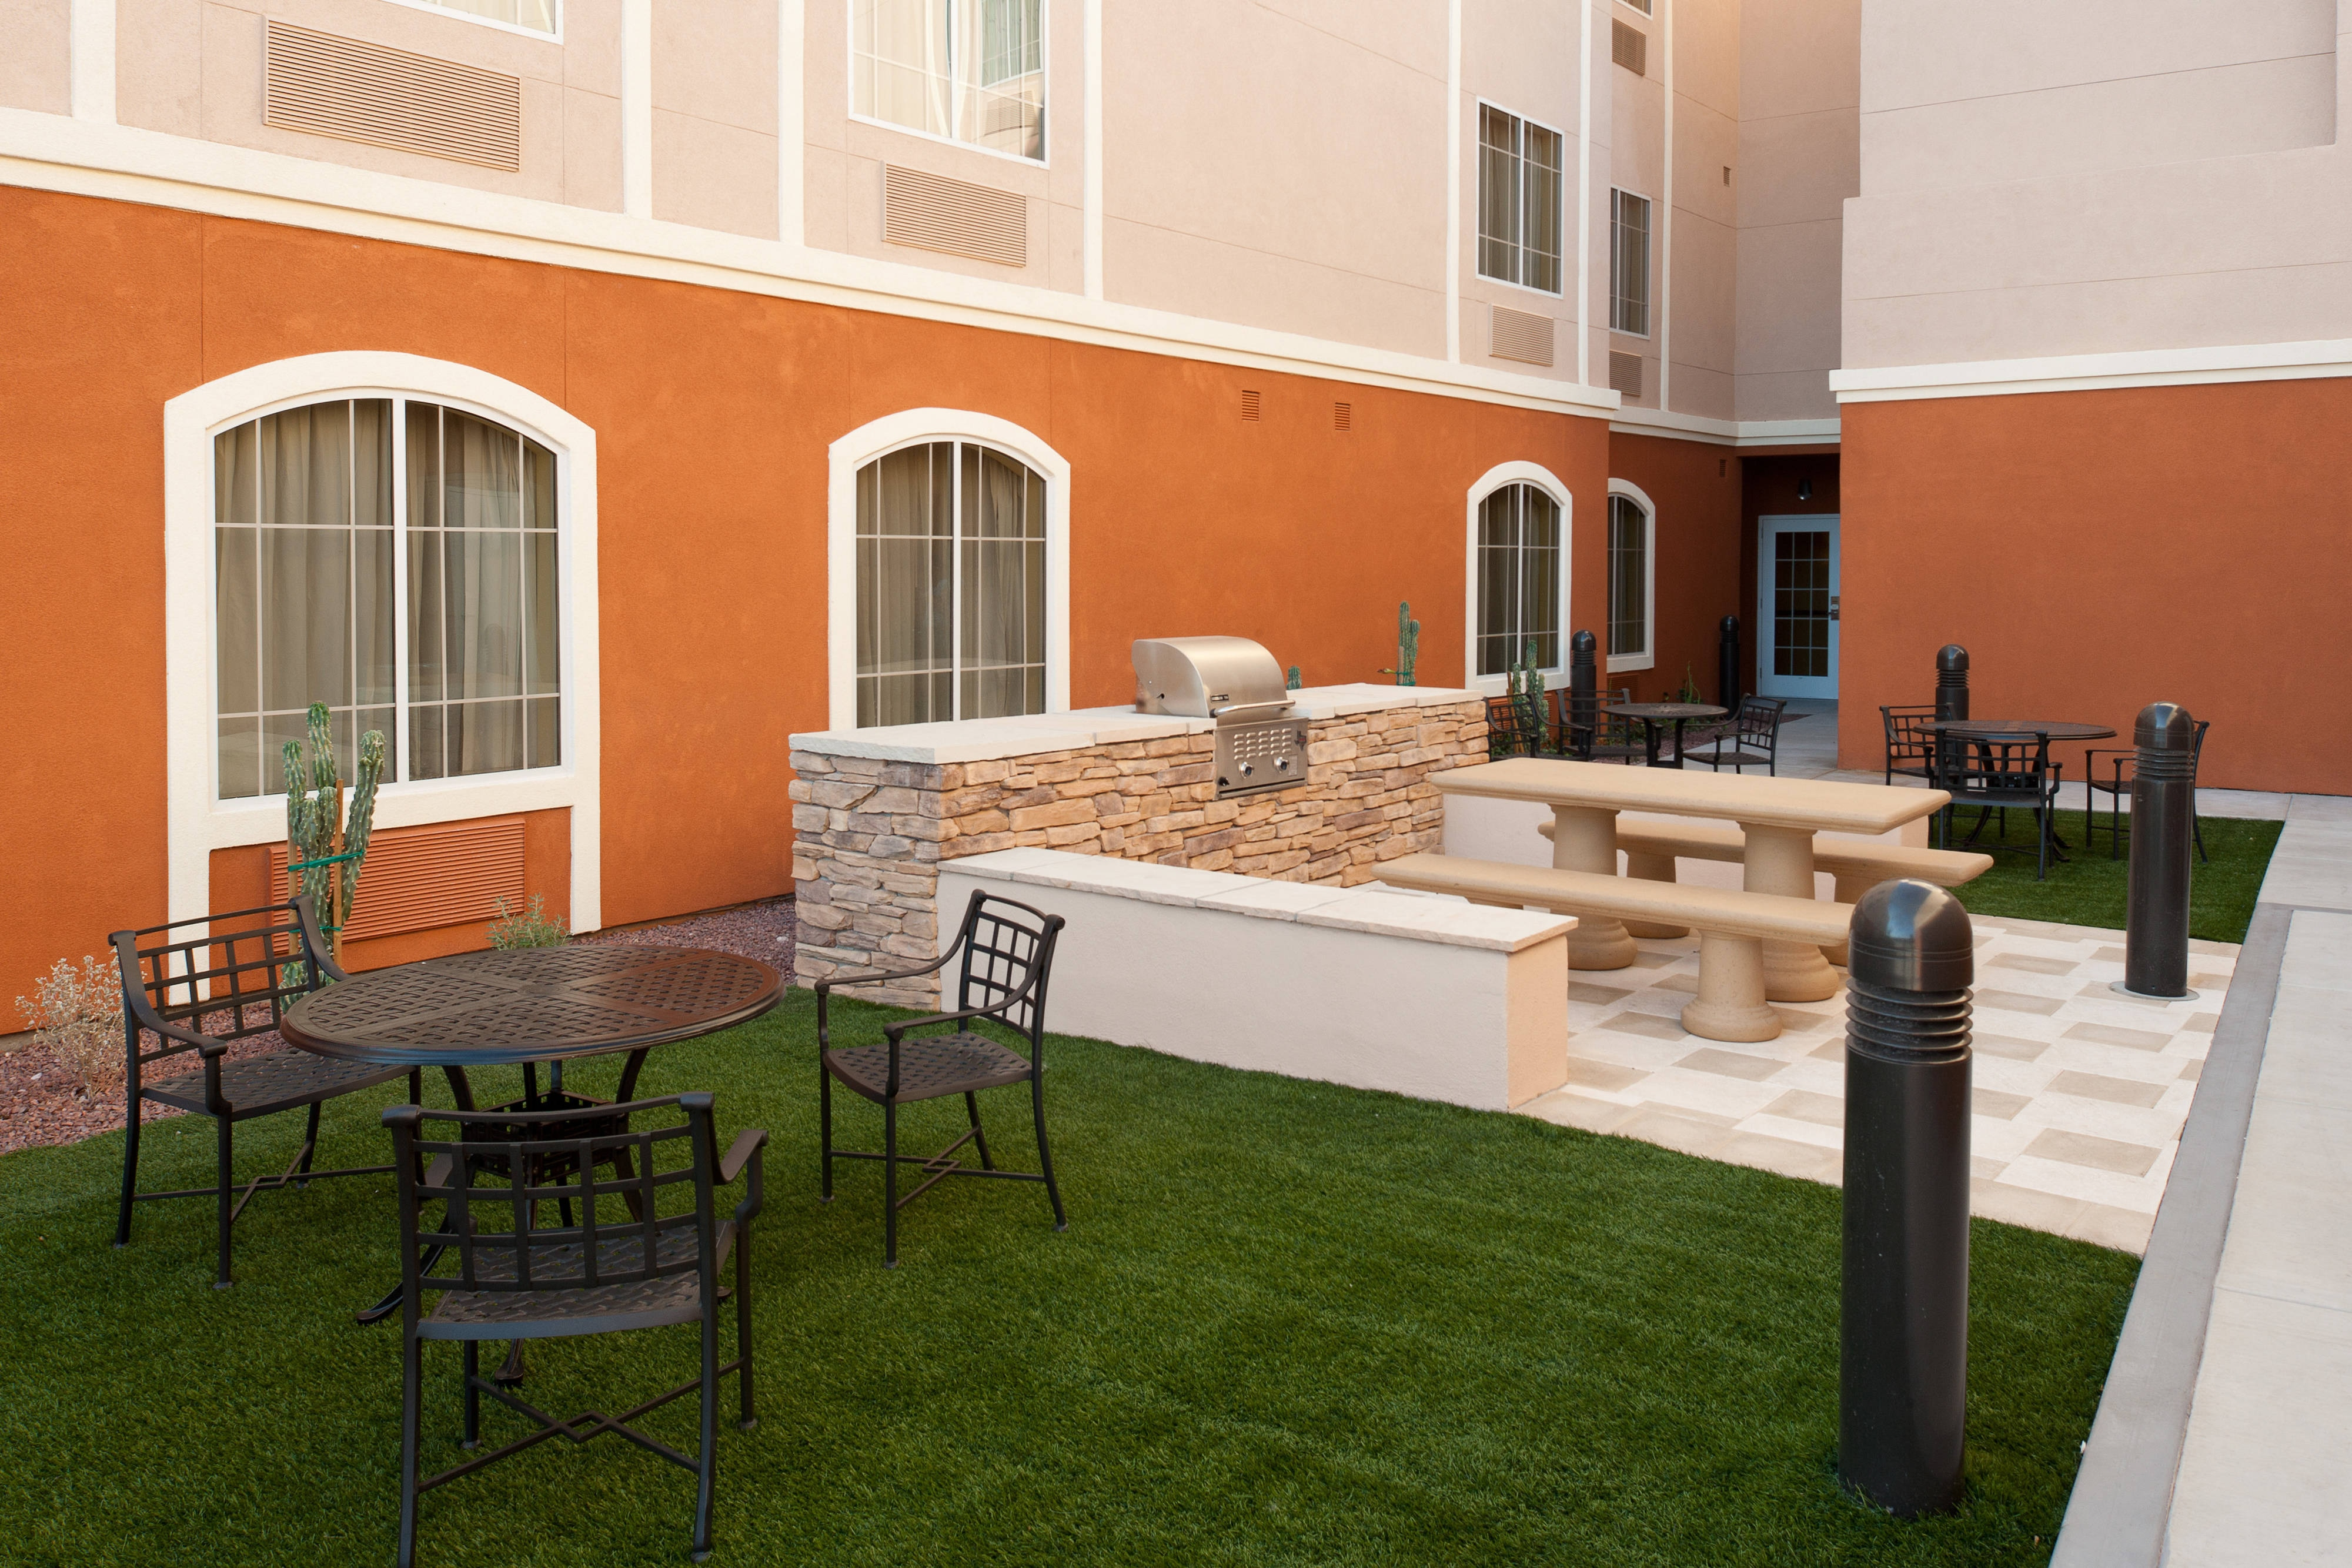 Outdoor Patio - Tucson AZ hotels